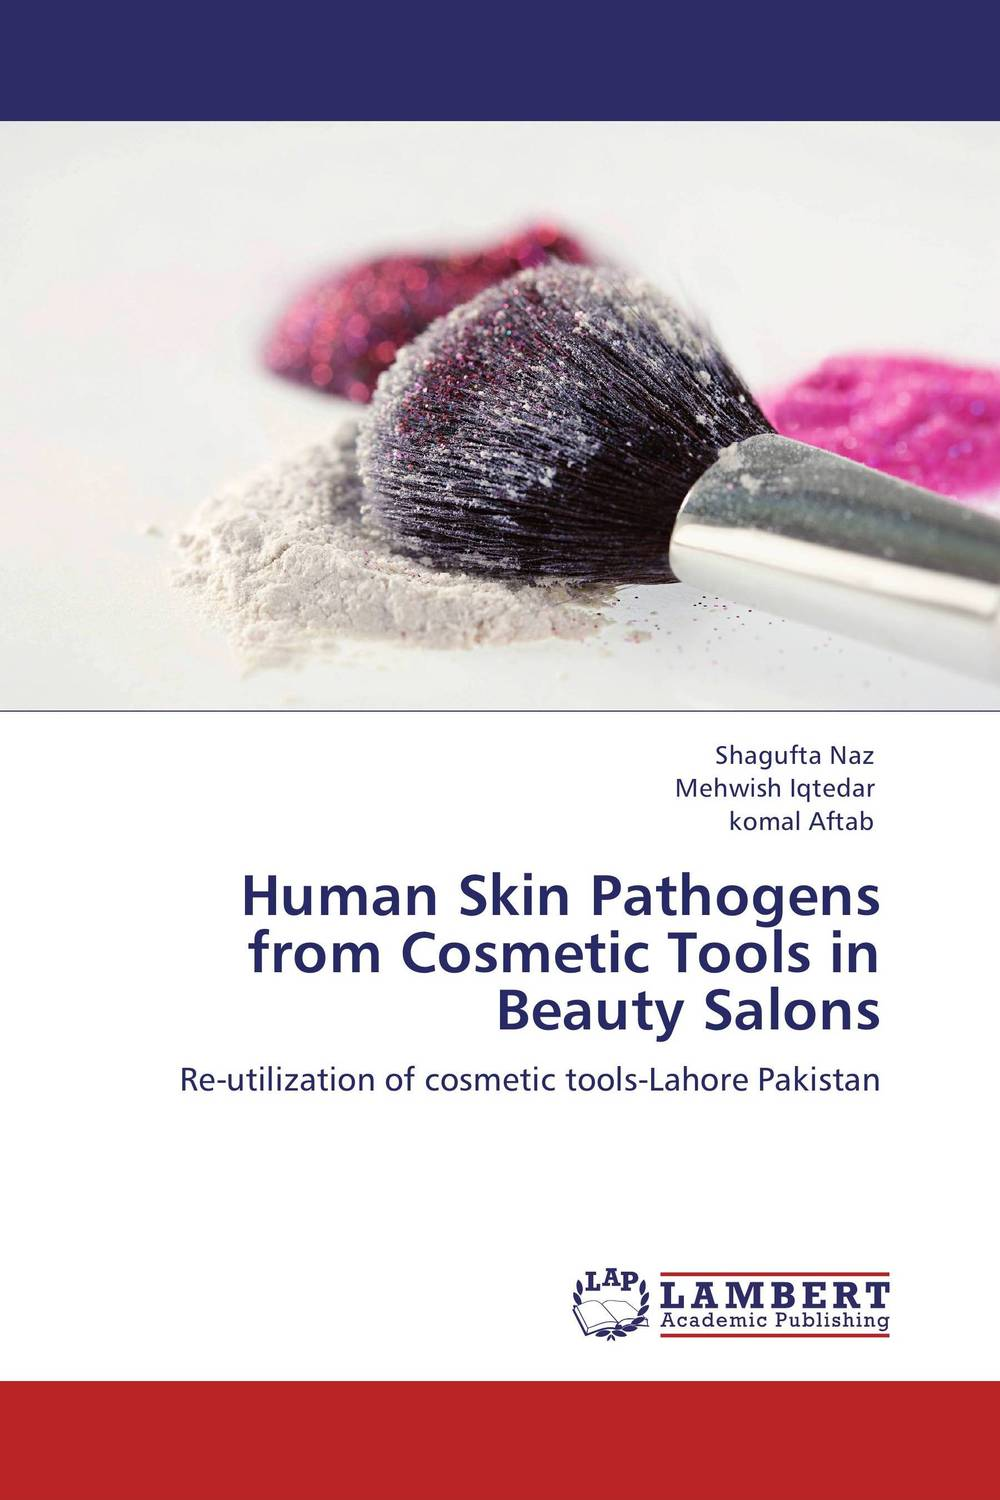 Human Skin Pathogens from Cosmetic Tools in Beauty Salons nidhi gondaliya and sweta patel methicilin resistance staphylococcus aureus skin